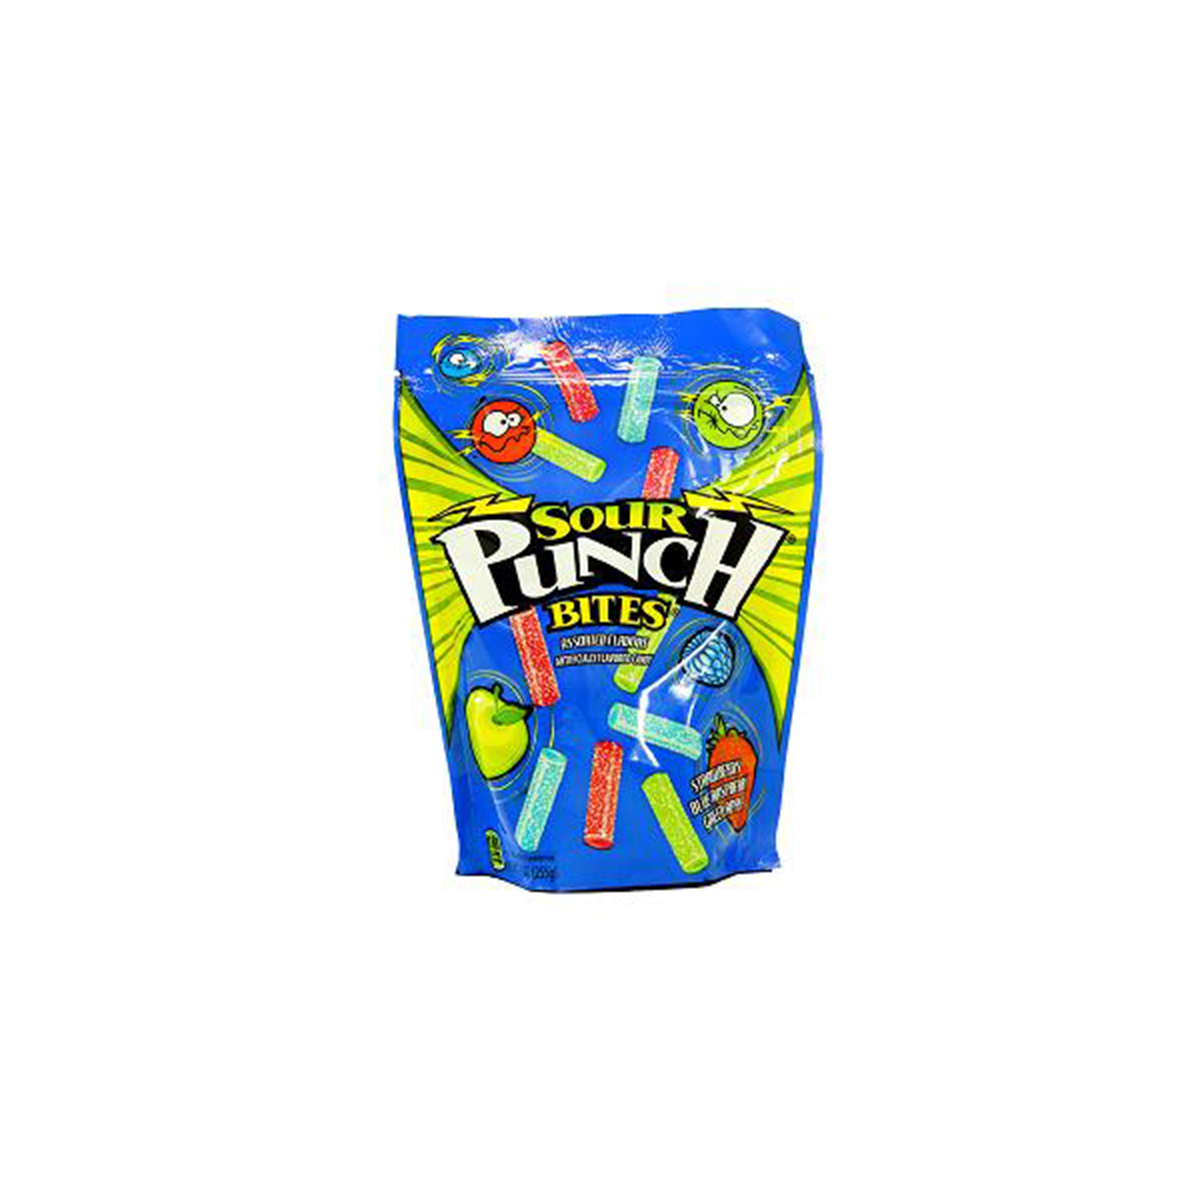 Product Of Sour Punch, Assorted Flavor Bite, Count 1 (9 oz ) - Sugar Candy / Grab Varieties & Flavors